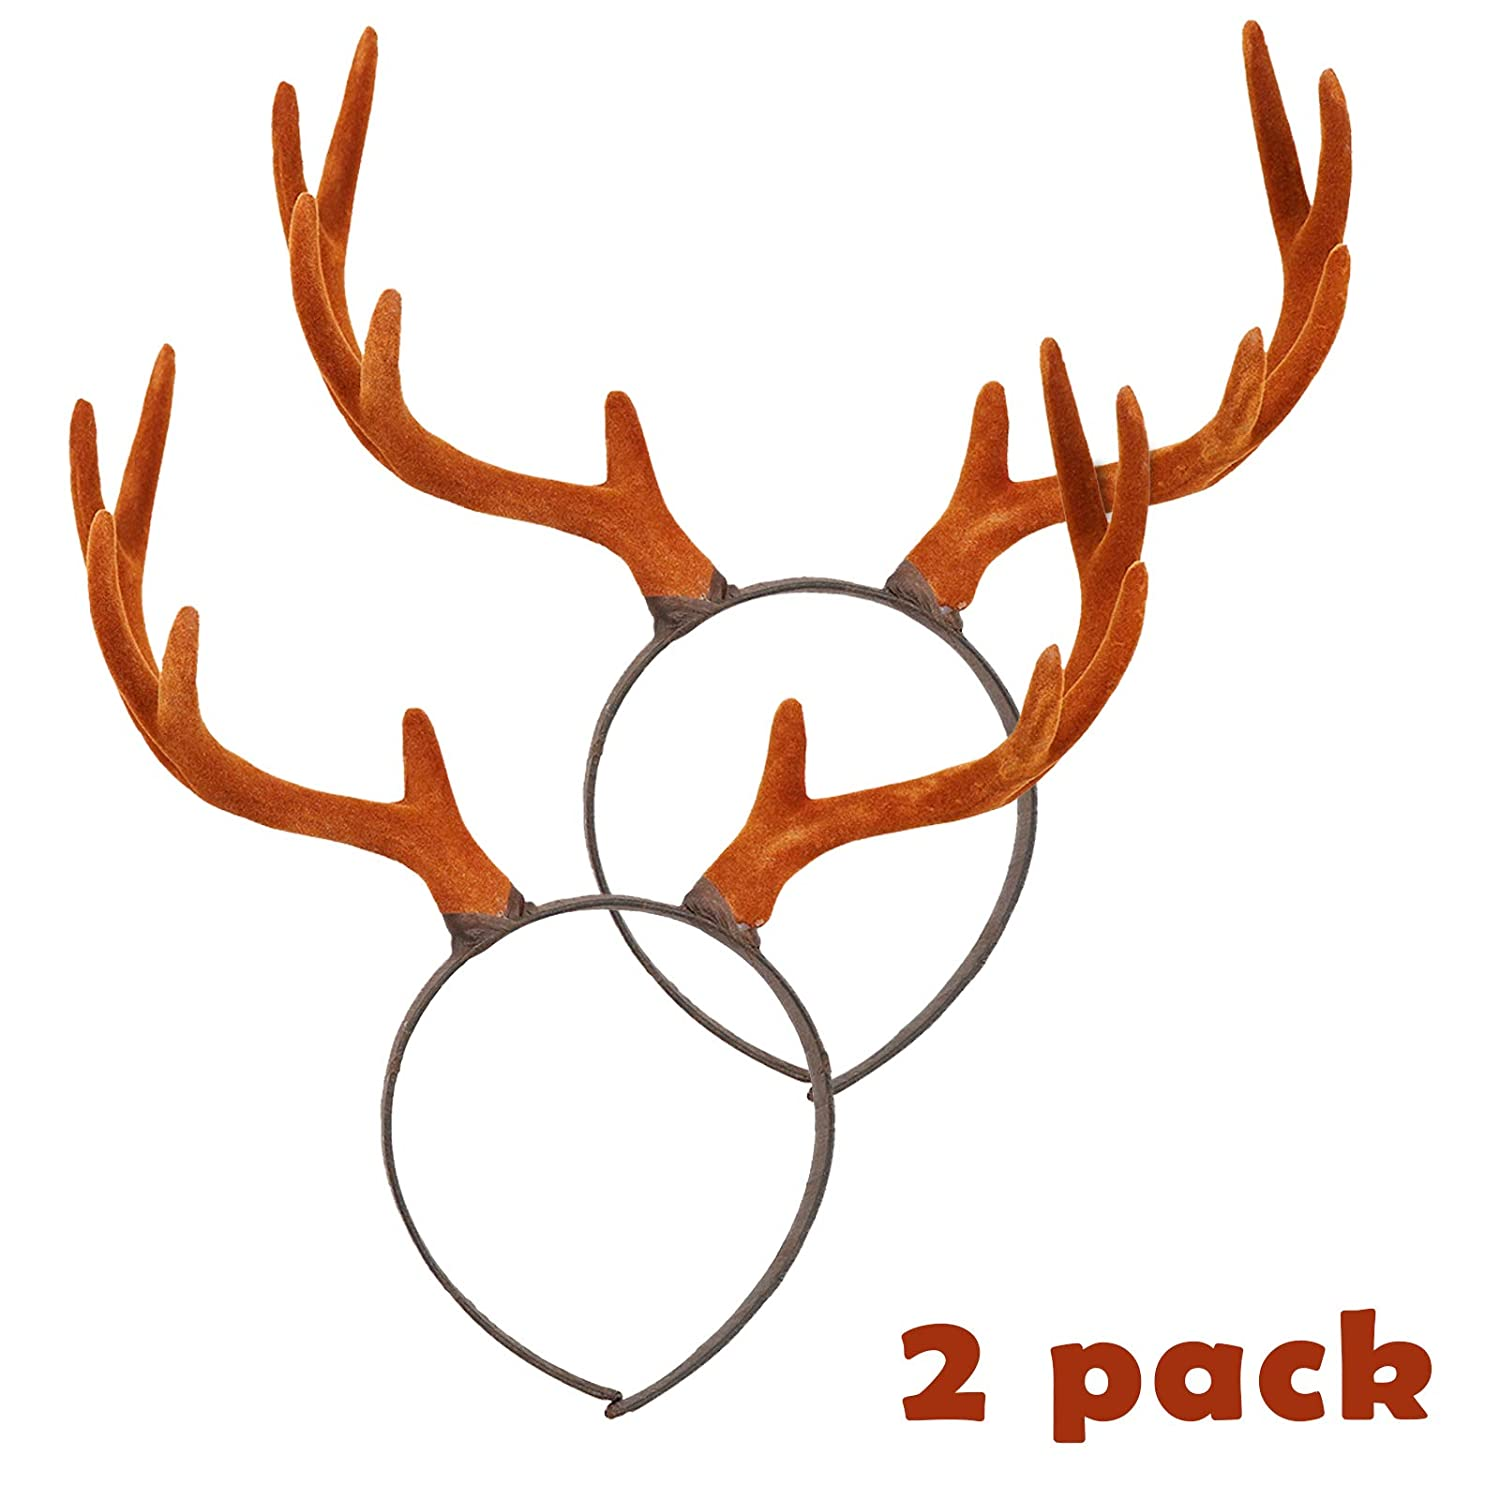 Pawliss Reindeer Antler Headband Cute Hair Accessory for Christmas Holiday Party Stereoscopic Design